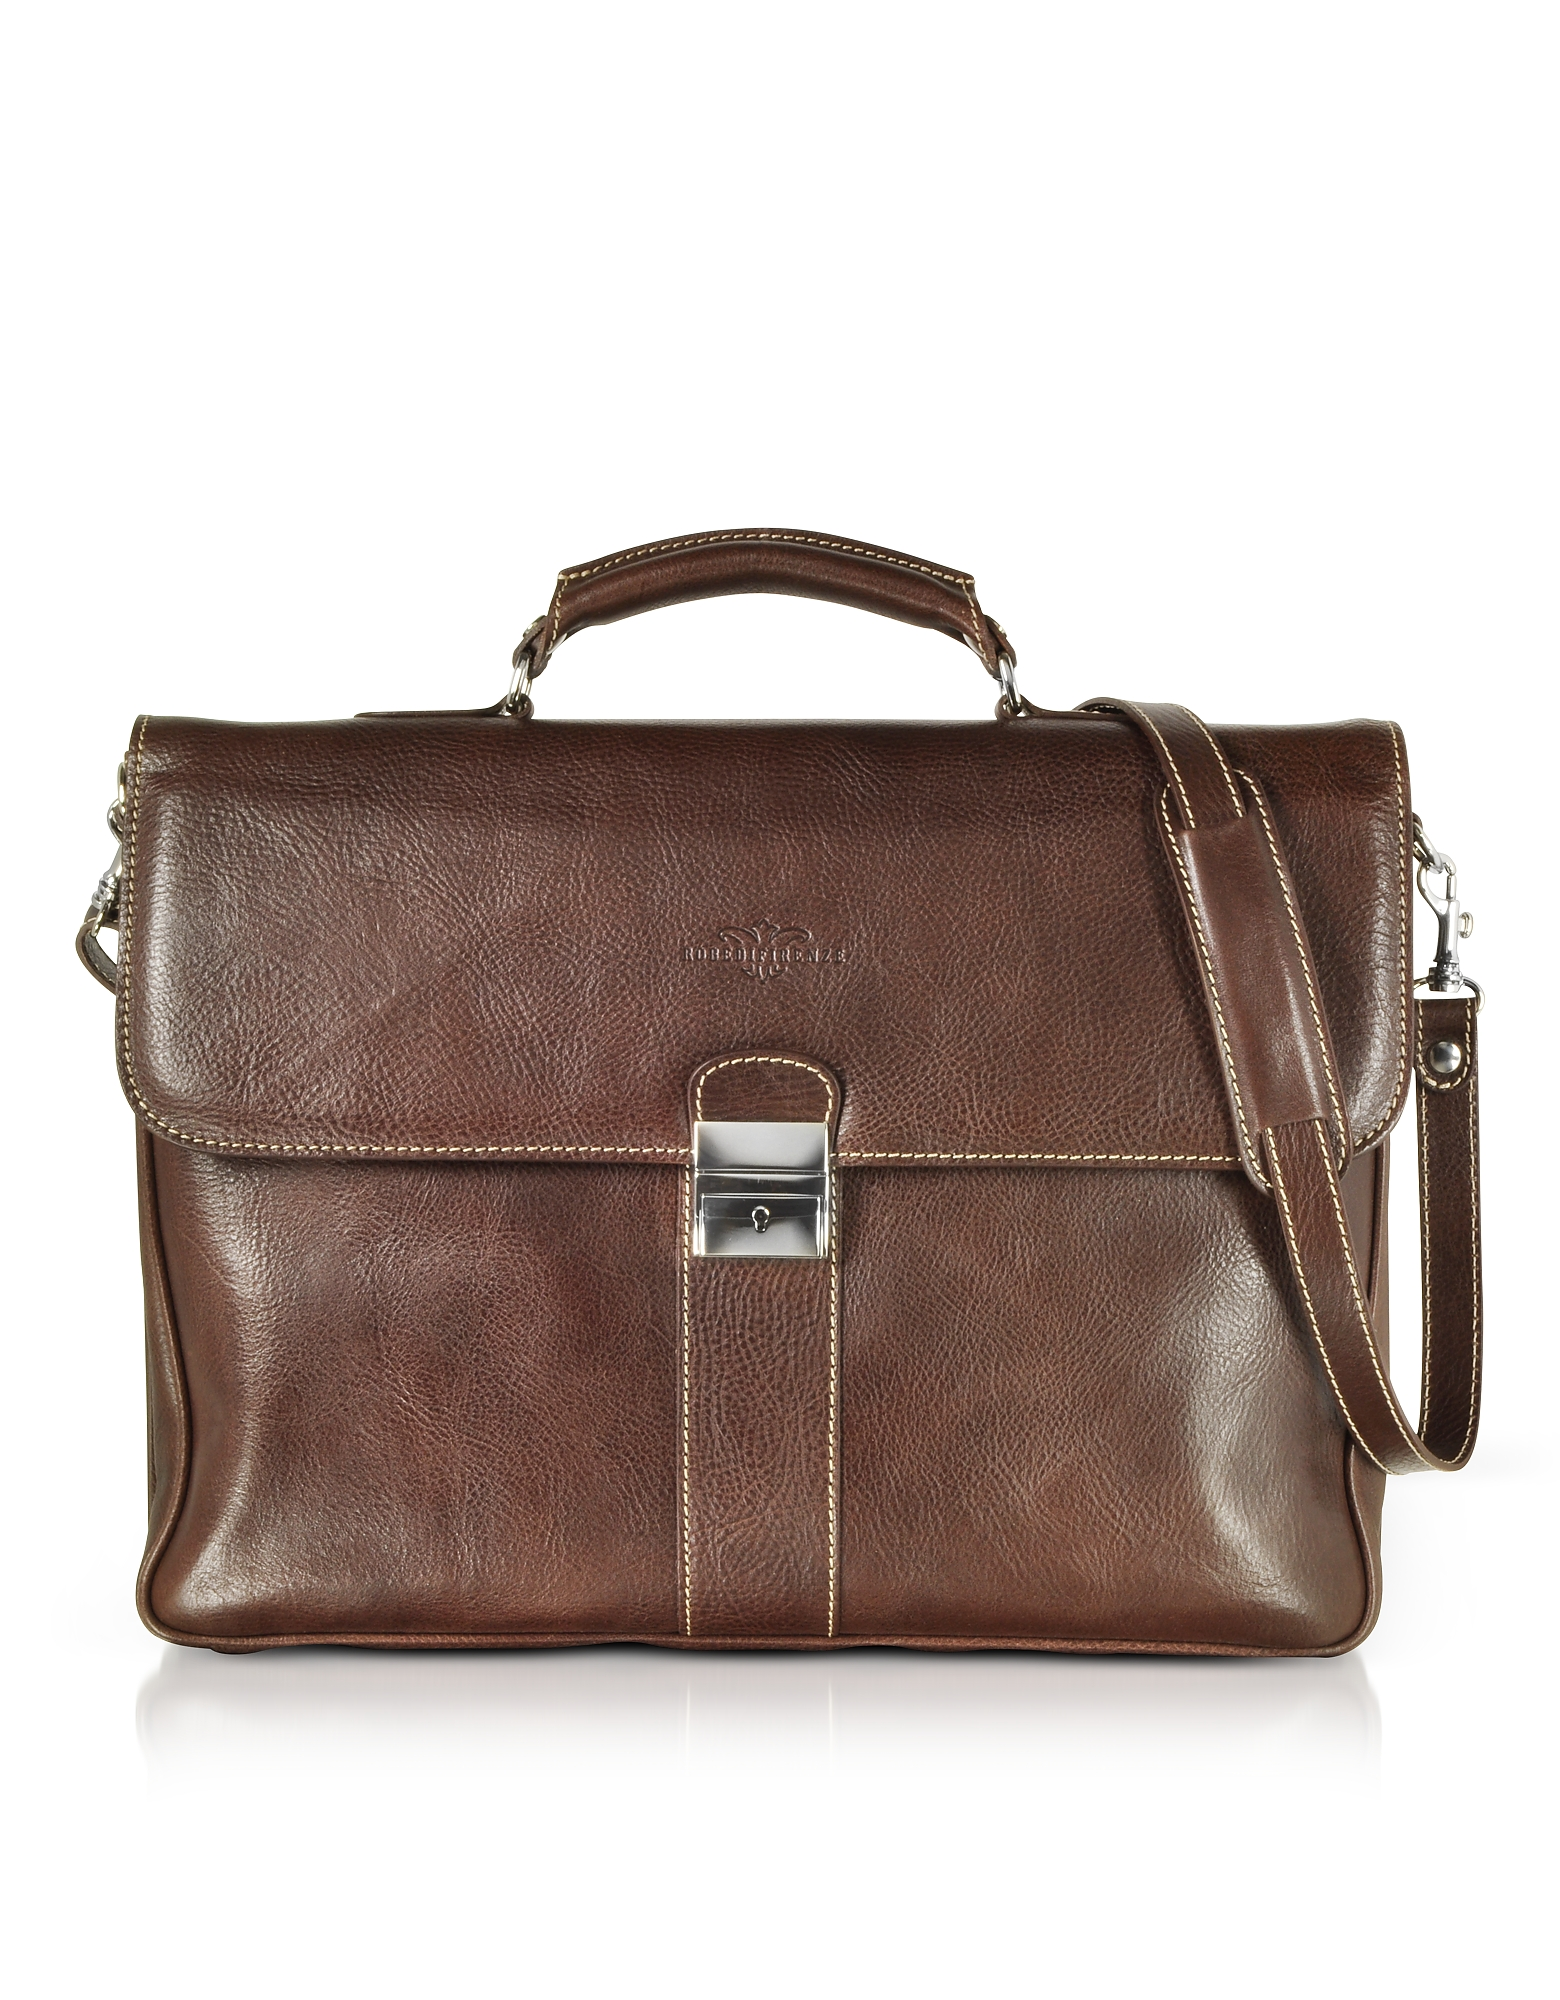 Image of Robe di Firenze Designer Briefcases, Dark Brown Double Gusset Leather Briefcase